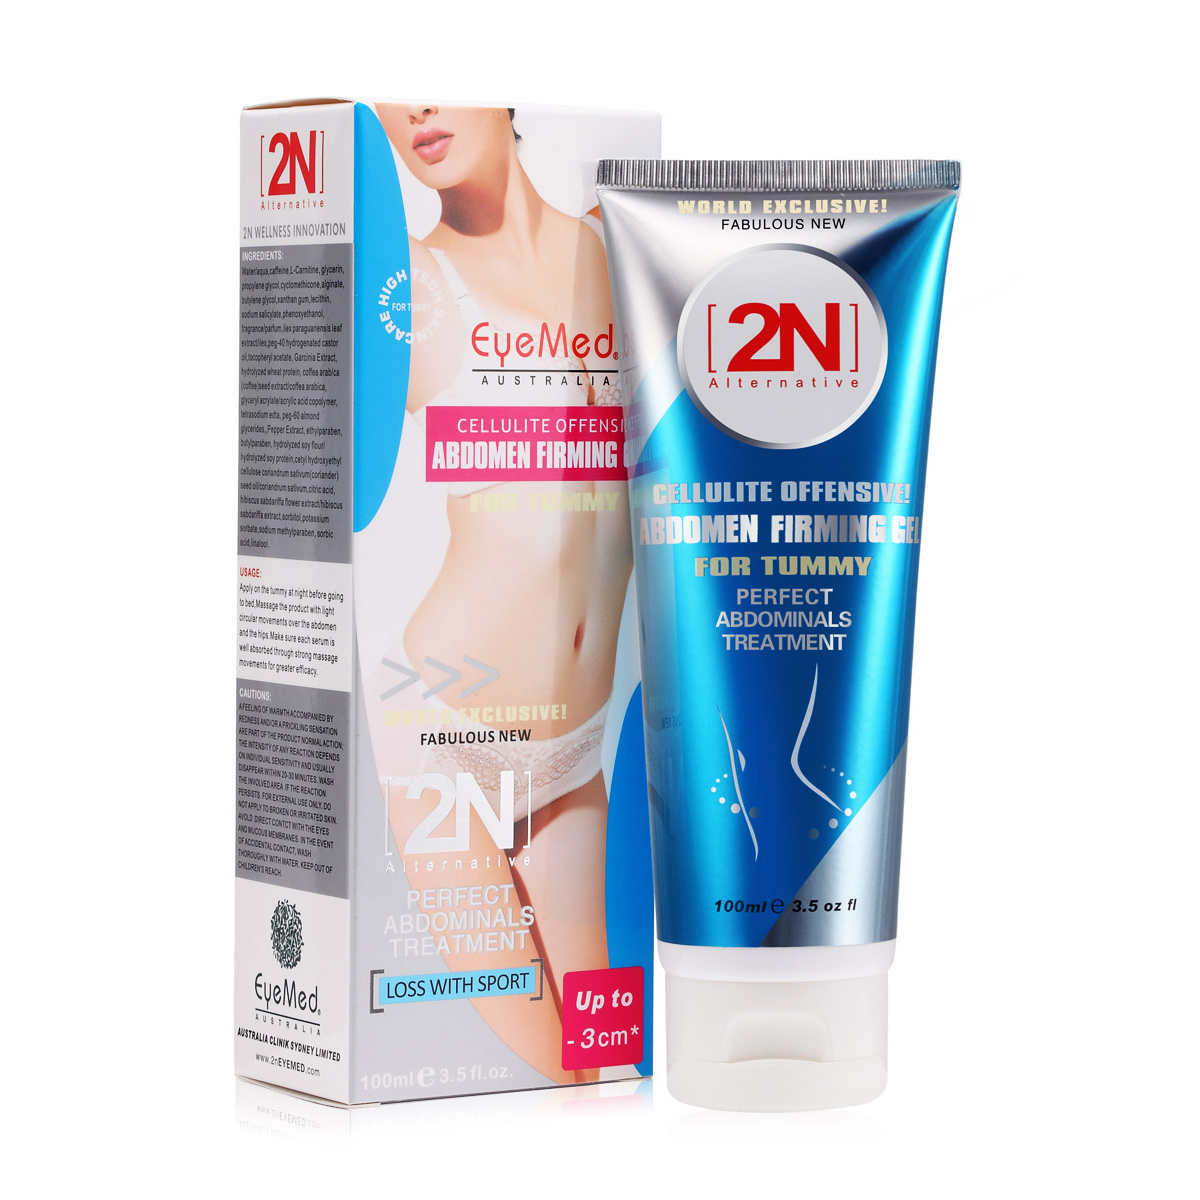 2N Stomach Fat Burning Gel for weight loss body anti cellulite slimming products to lose weight and burn fat health care creams new 100% pure plant powerful fat burning slimming essential oil anti cellulite natural leg full body thin weight lose product